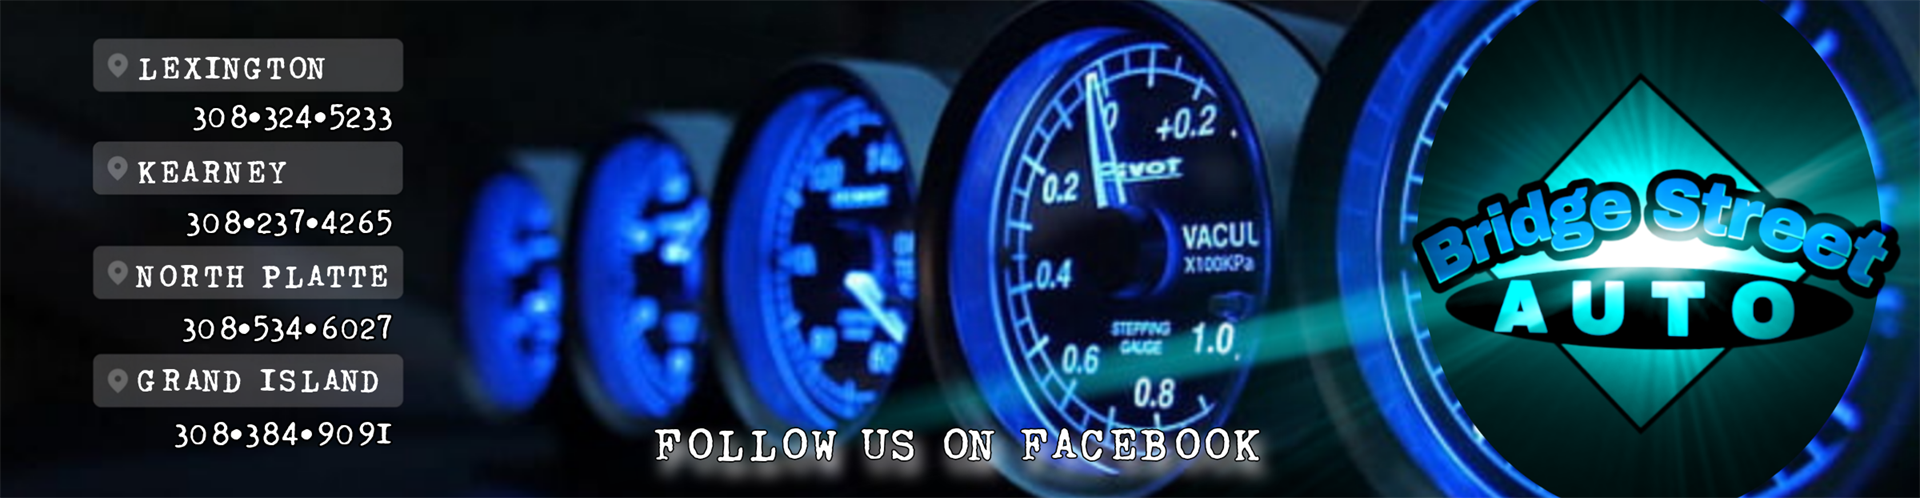 Bridge Street Auto | Used Cars Nebraska | Buy Here Pay Here